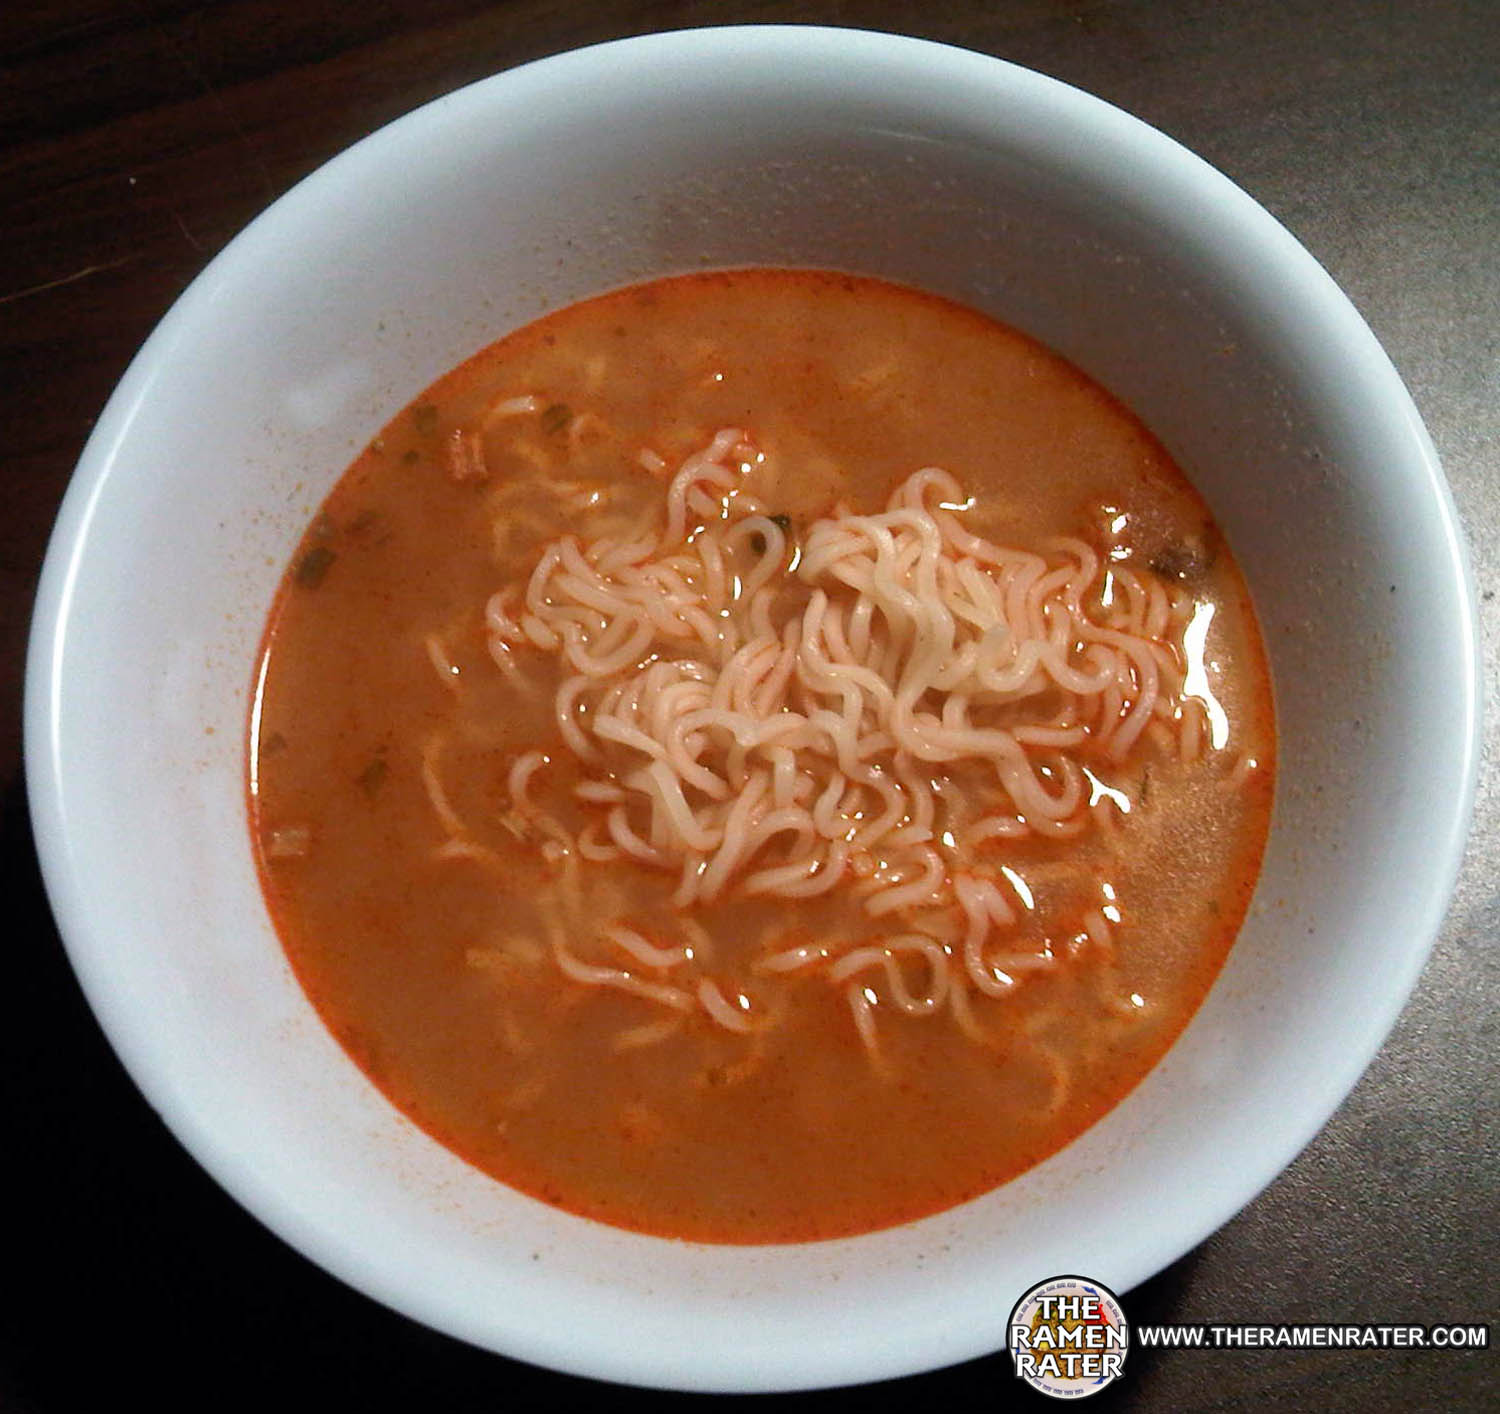 190: Maggi Tom Yam Flavour Instant Noodles - The Ramen Rater